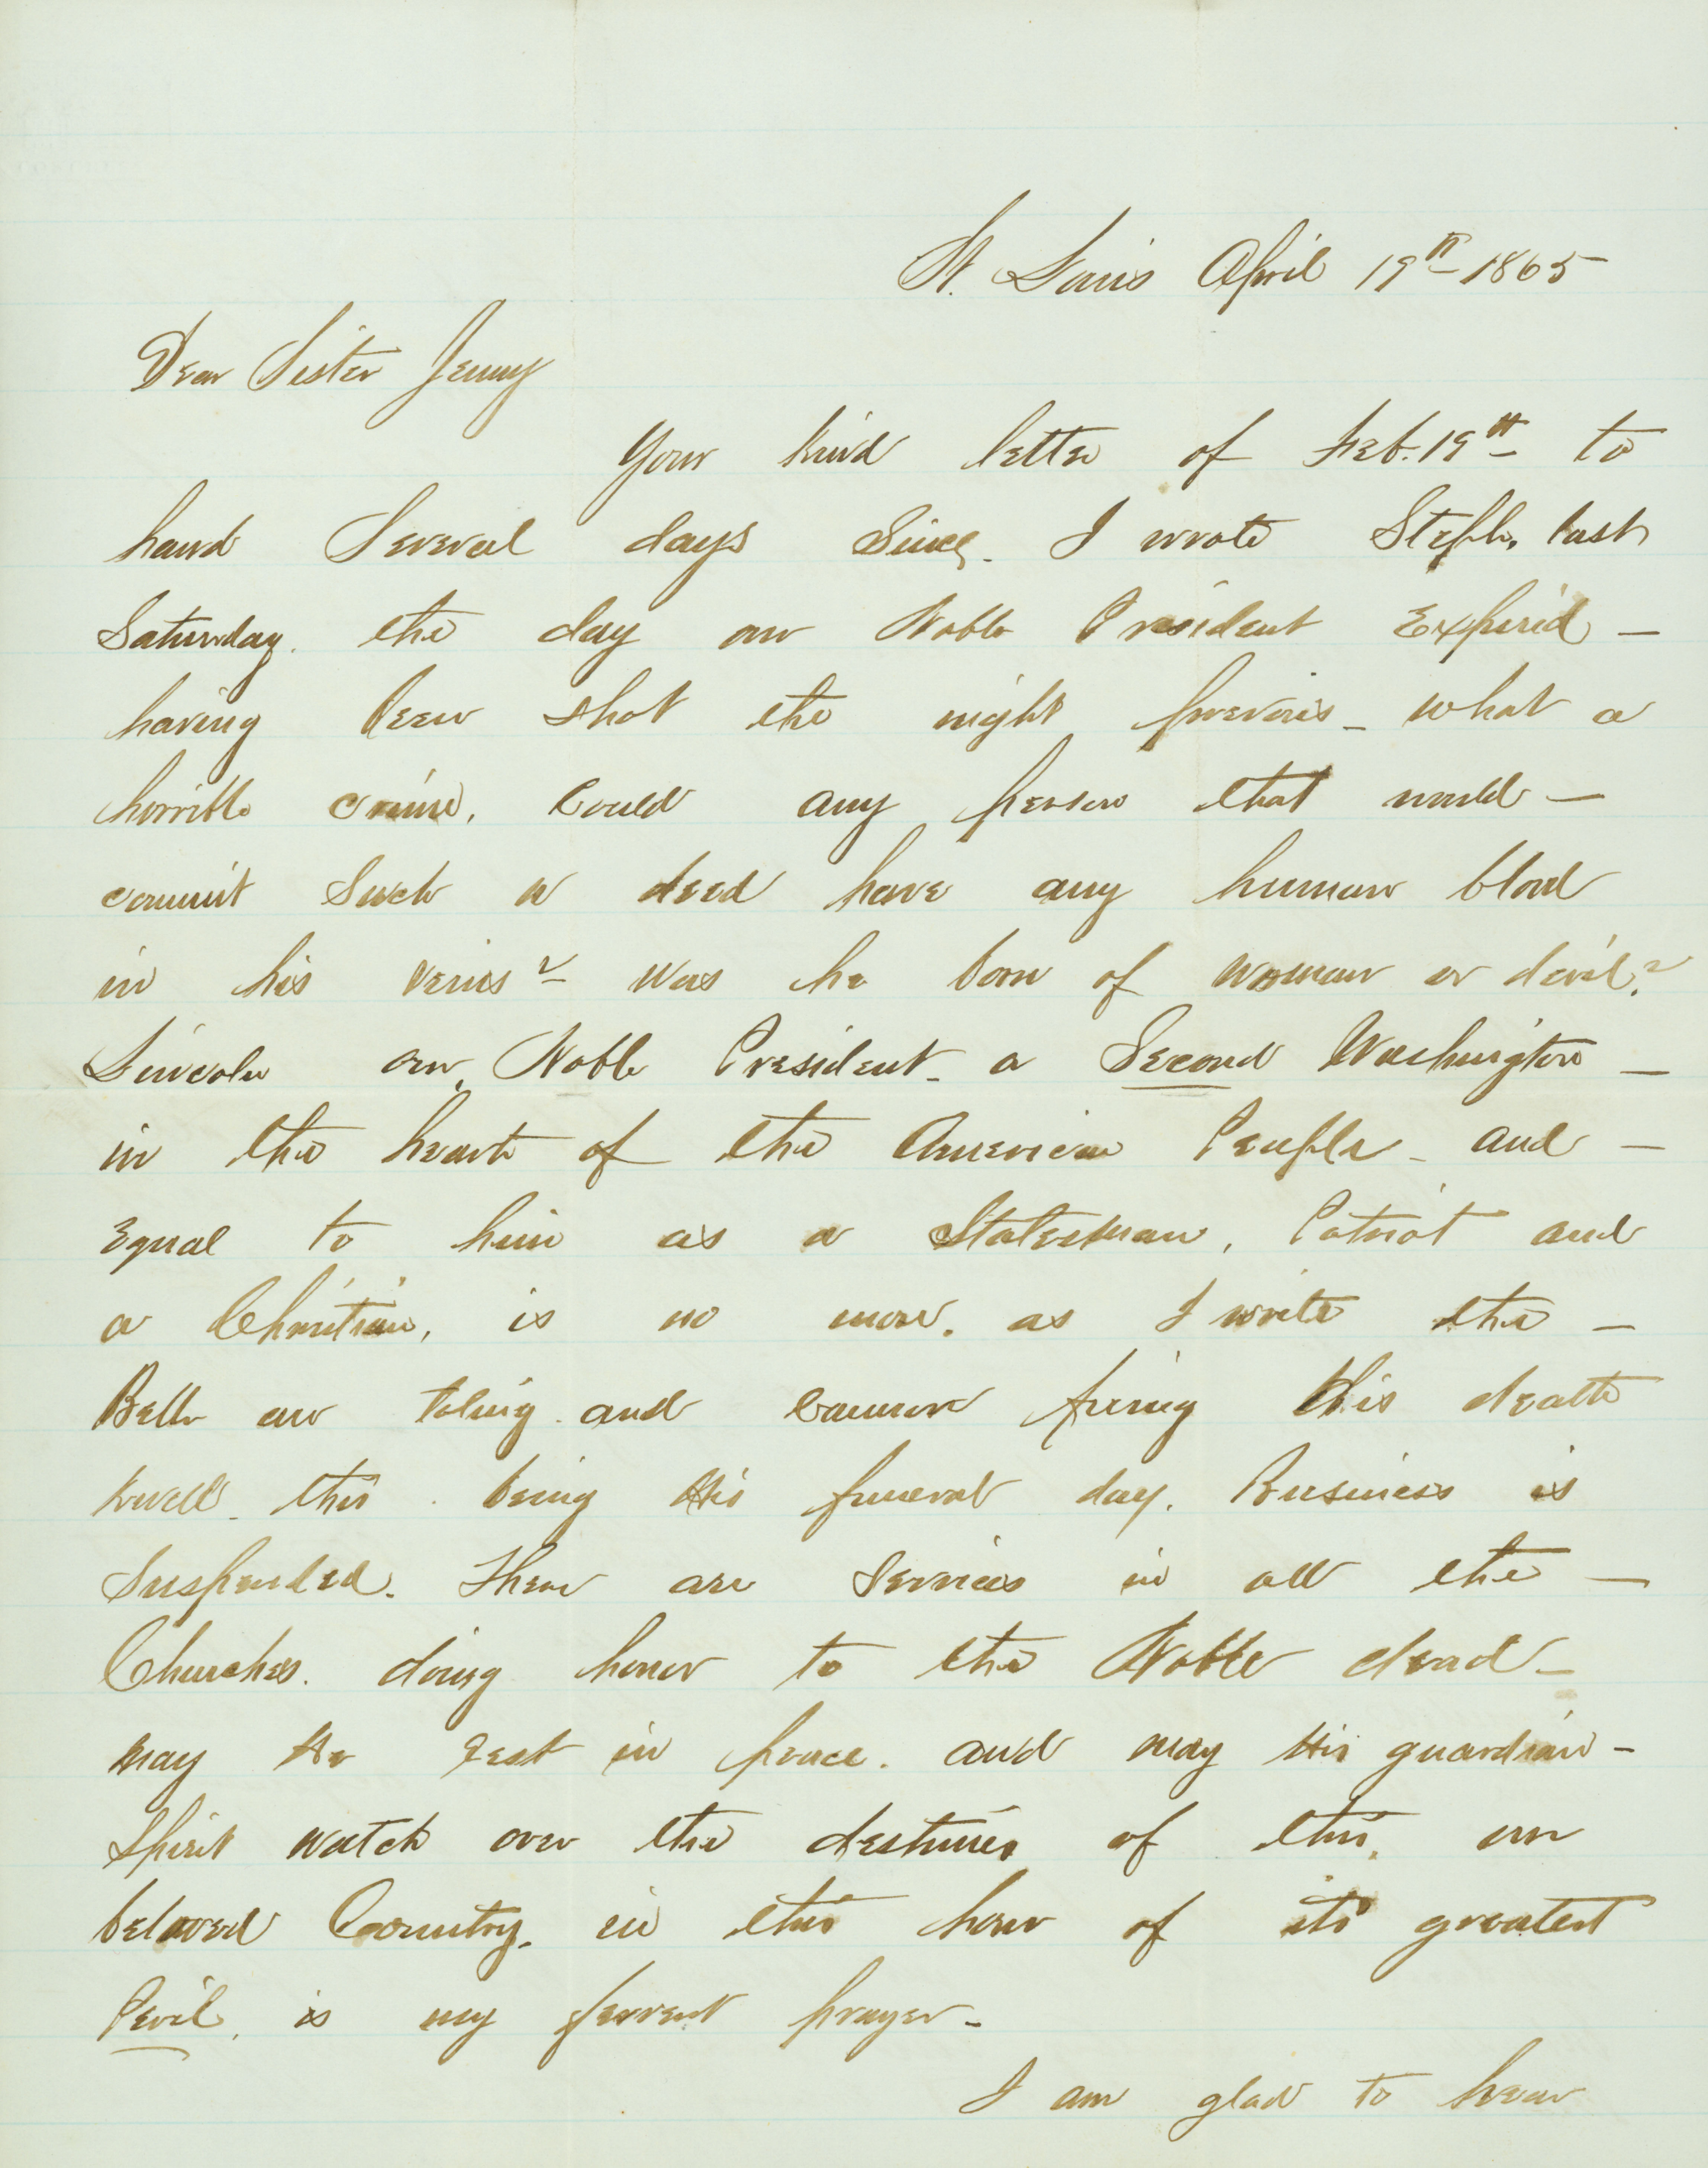 Letter of Jud M. Bemis, St. Louis, to his sister Jenny, April 19, 1865